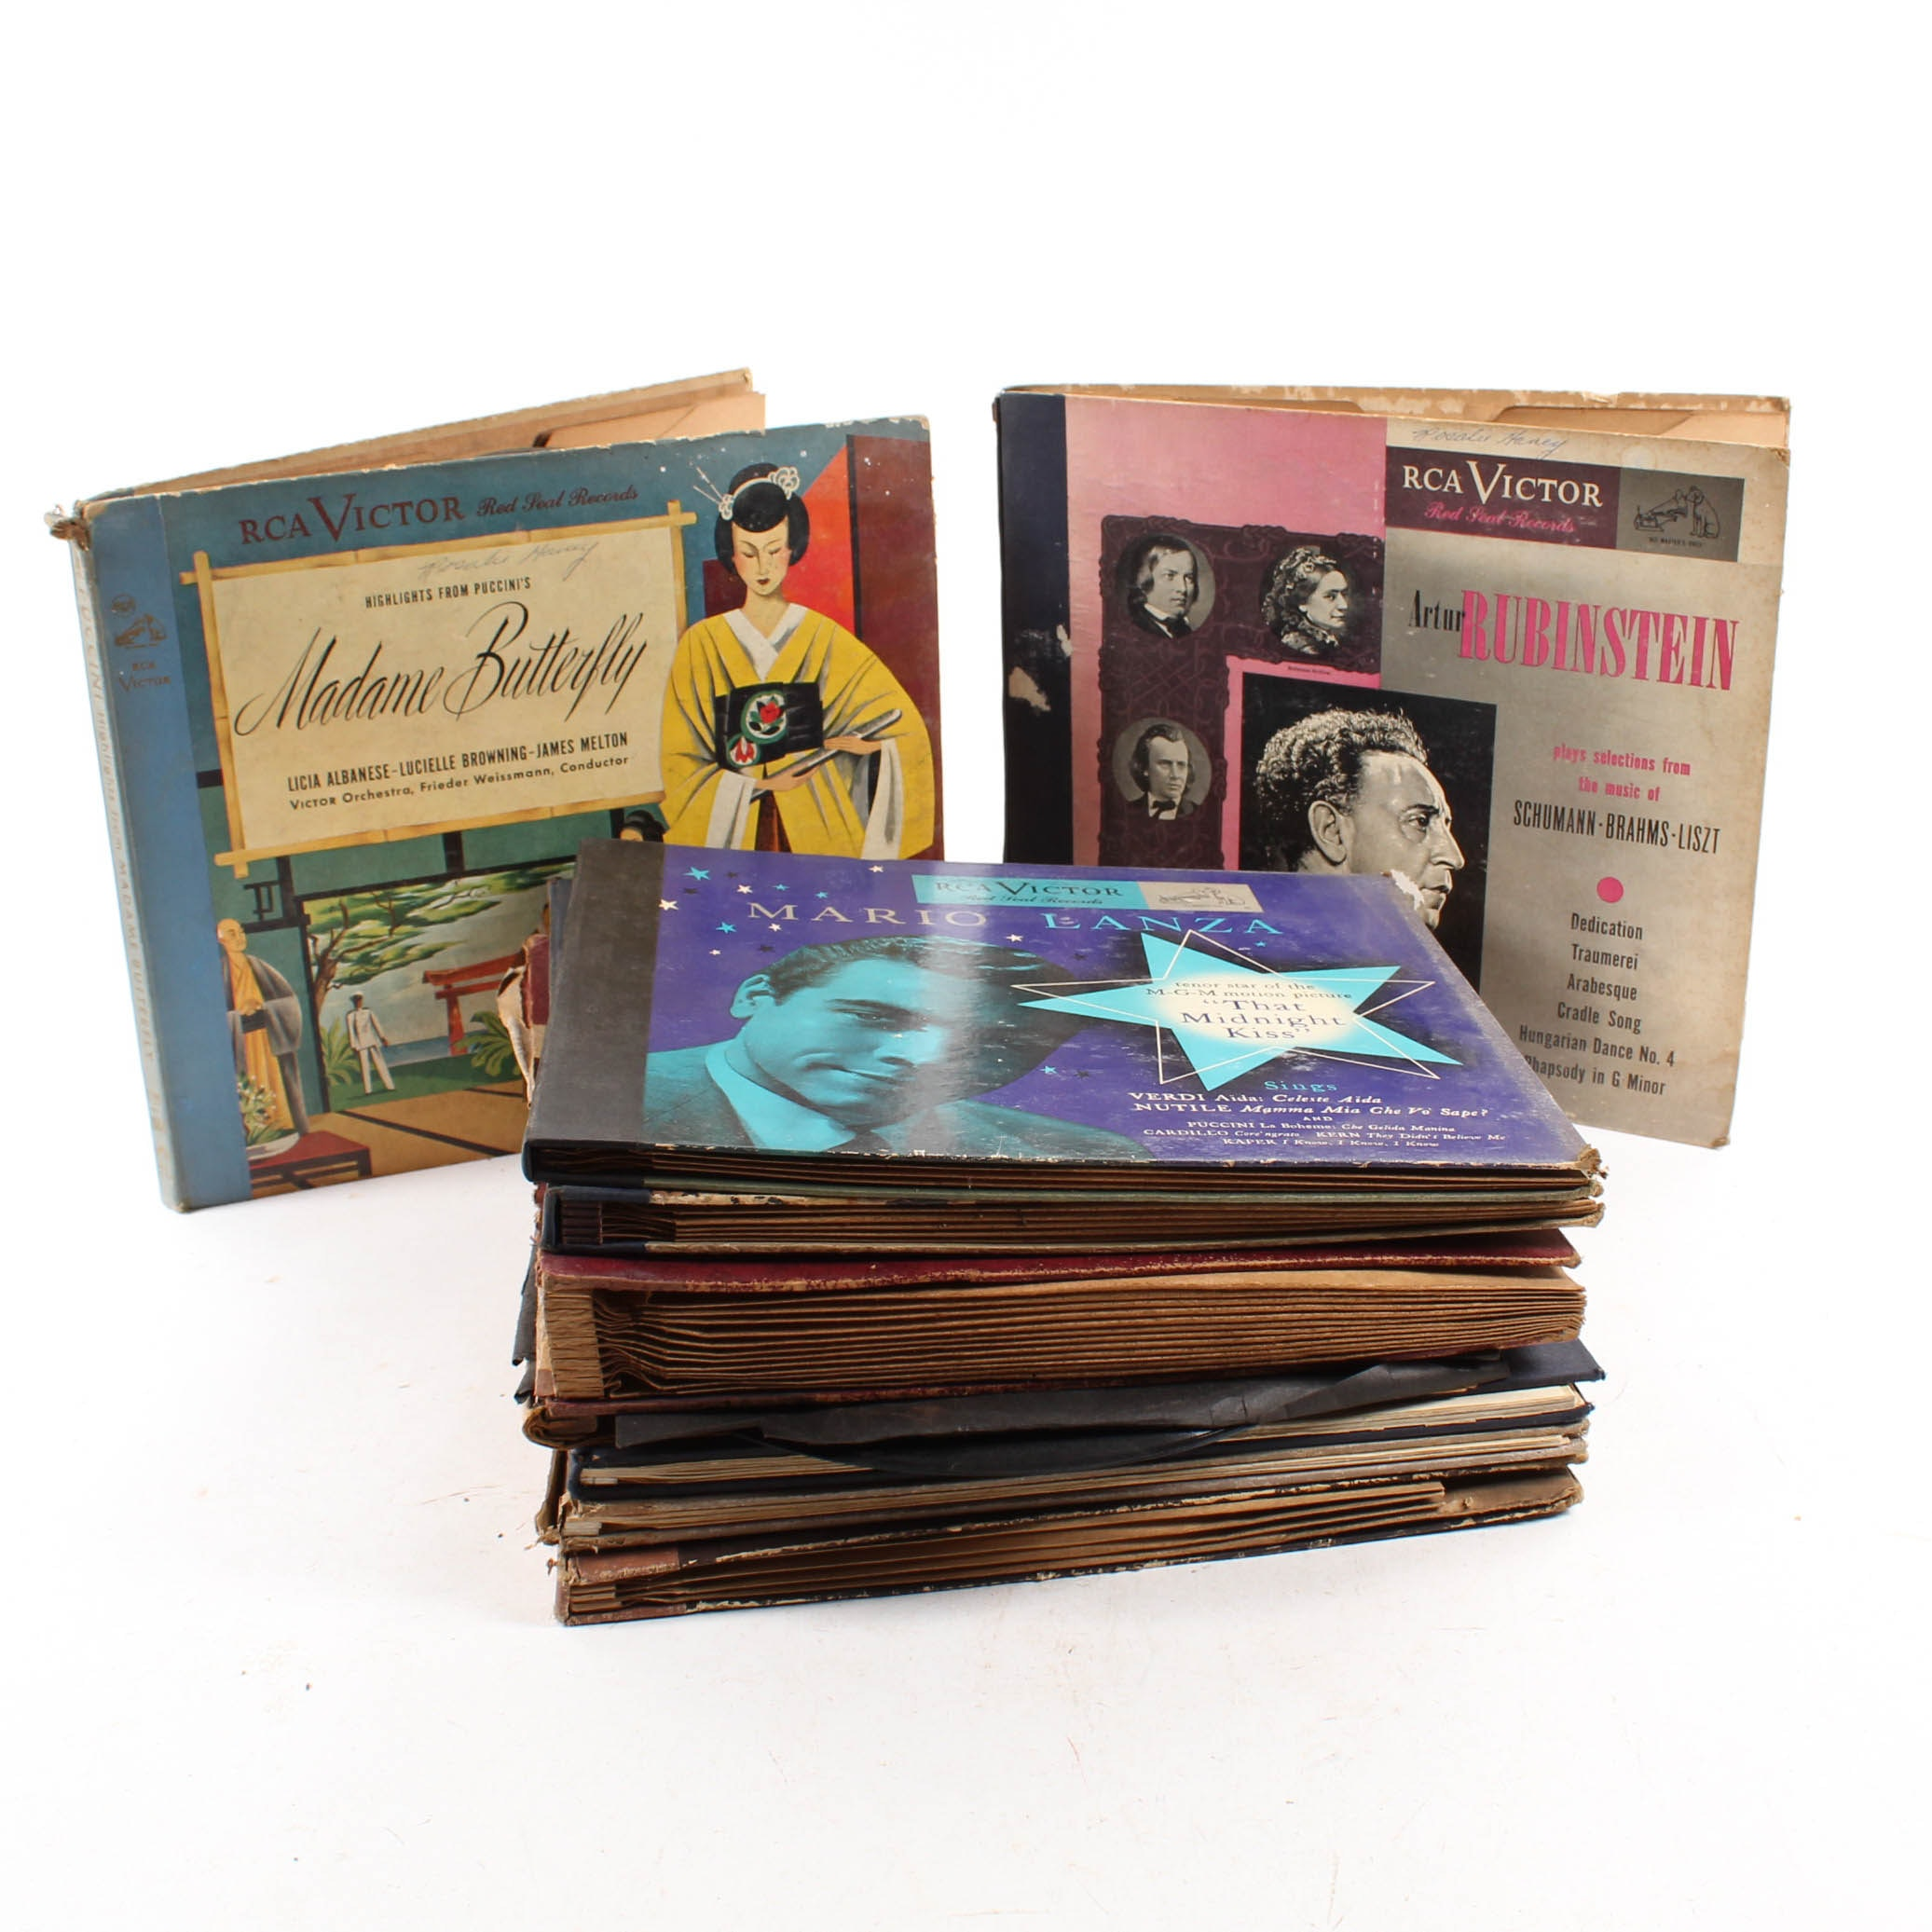 Vintage Classical and Opera 78 RPM Records